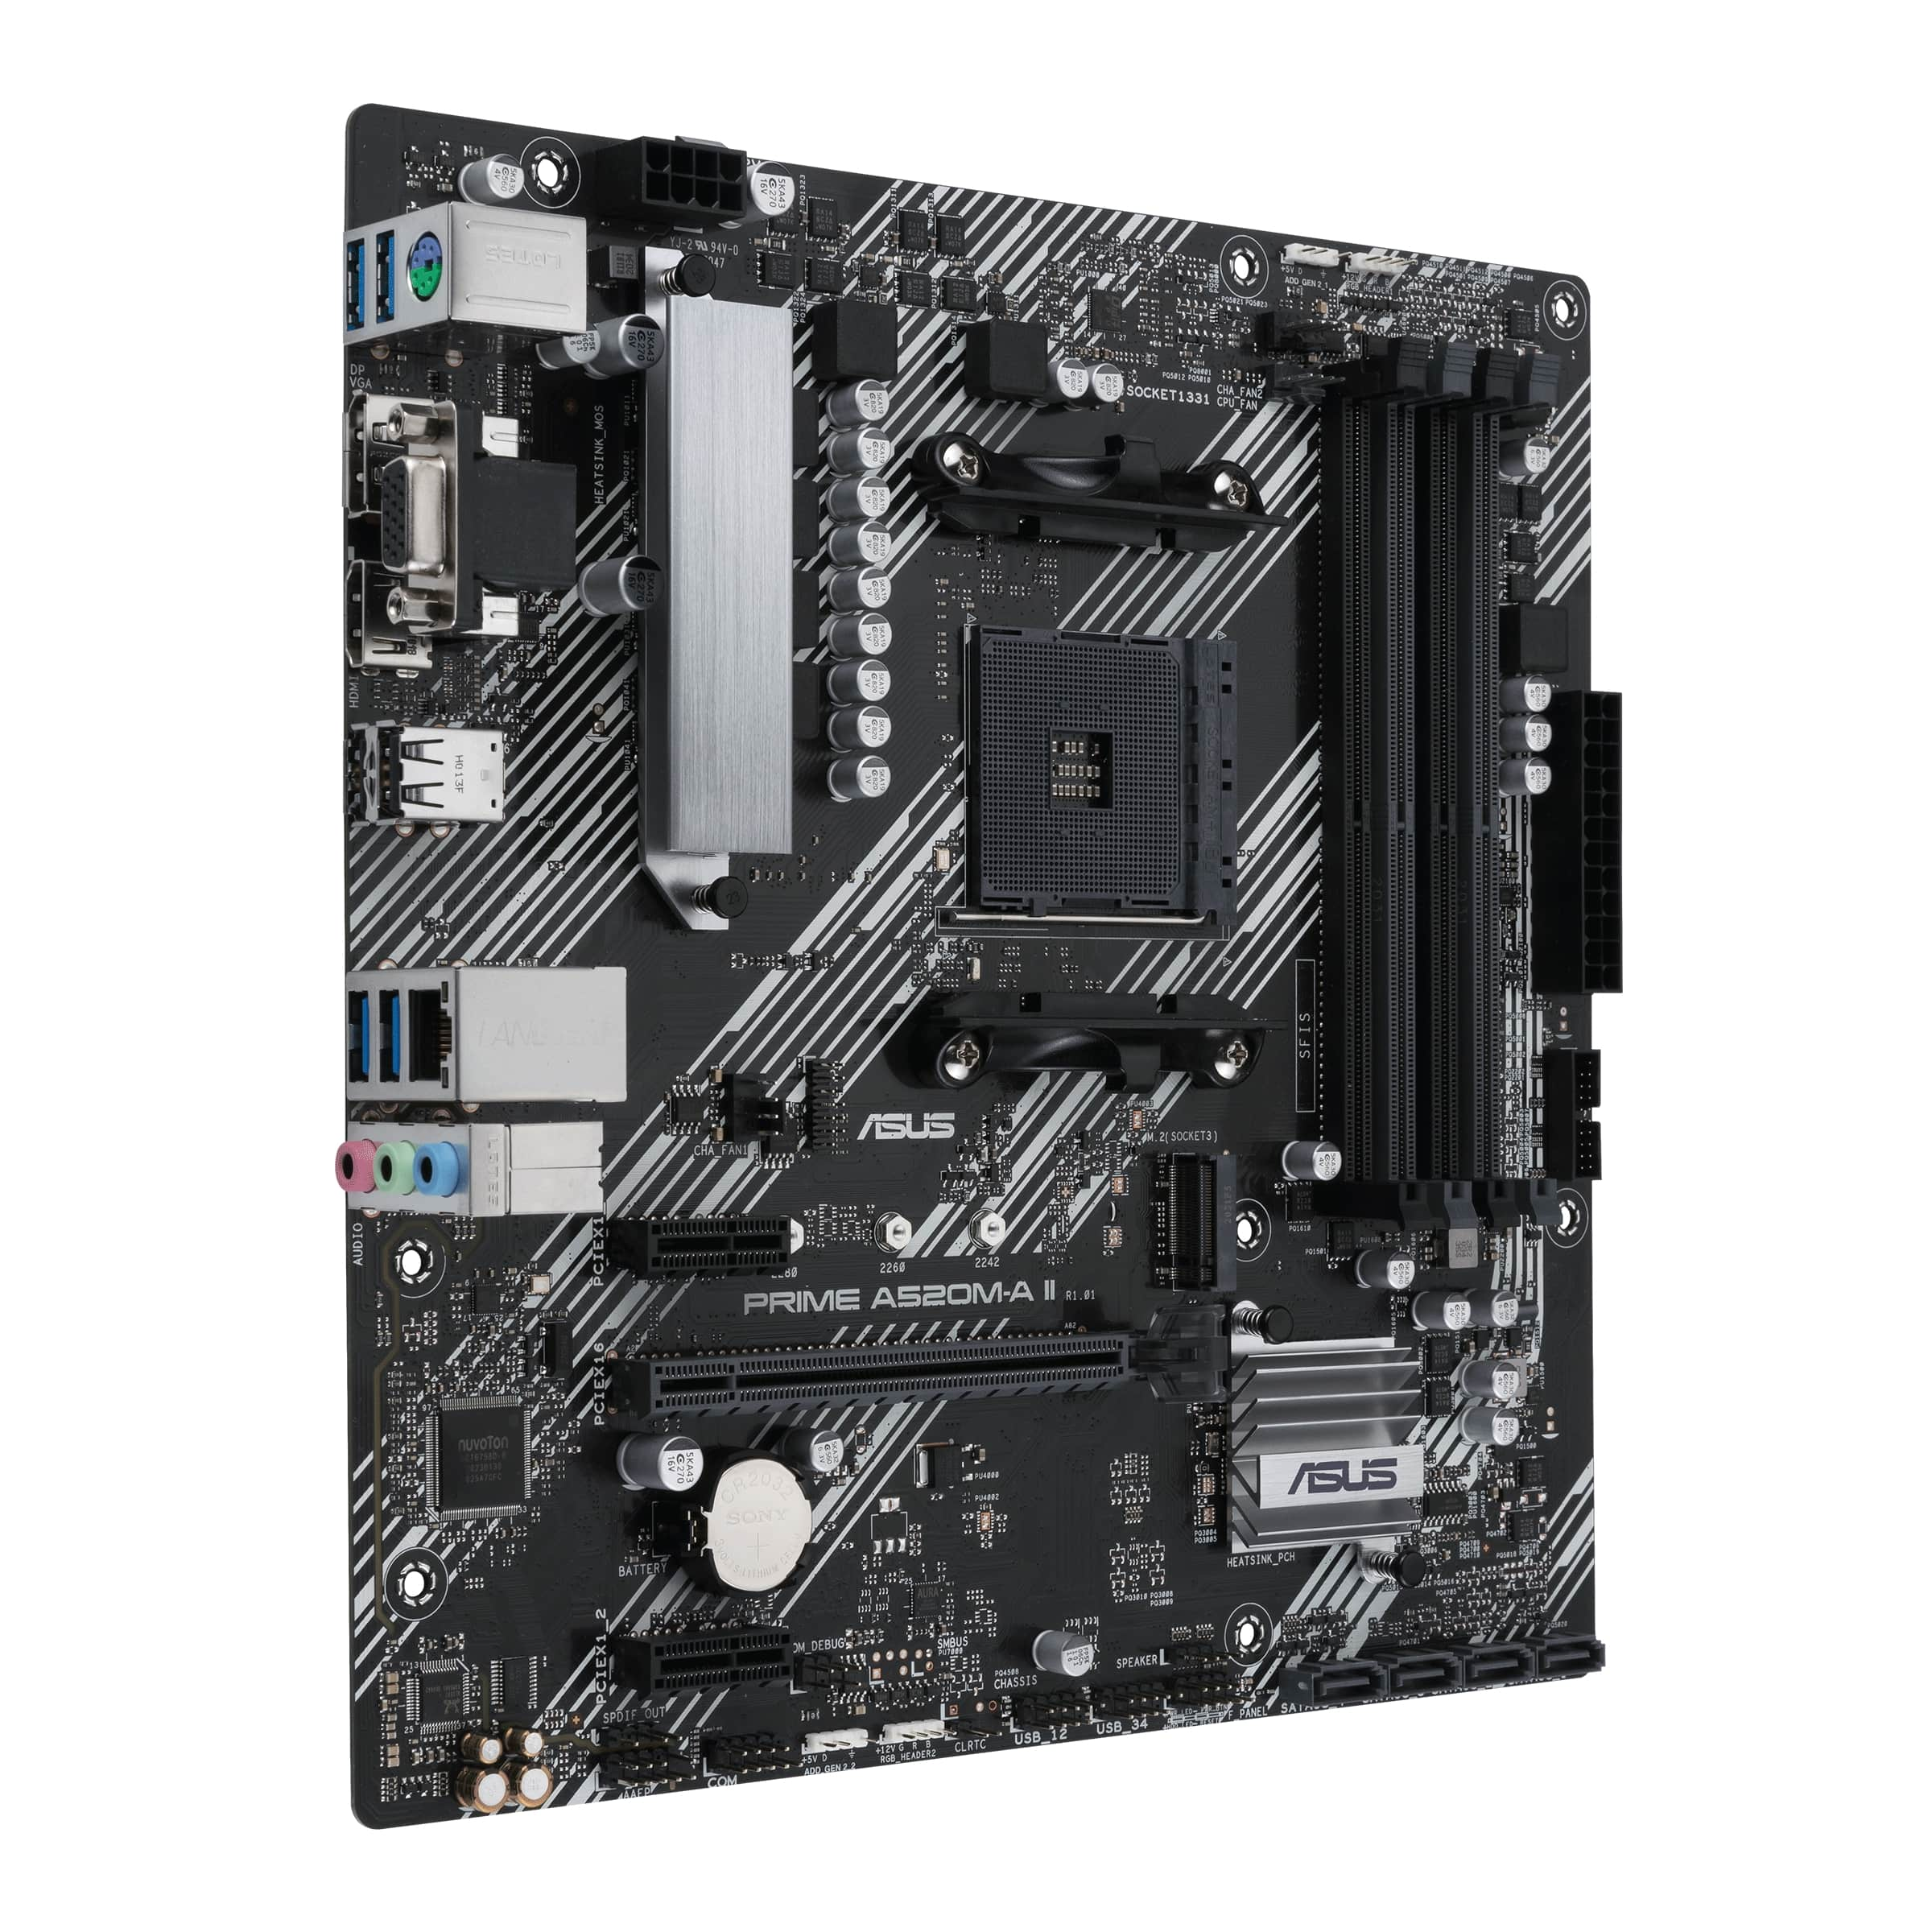 ASUS PRIME A520M-A II - 90MB17H0-M0EAY0